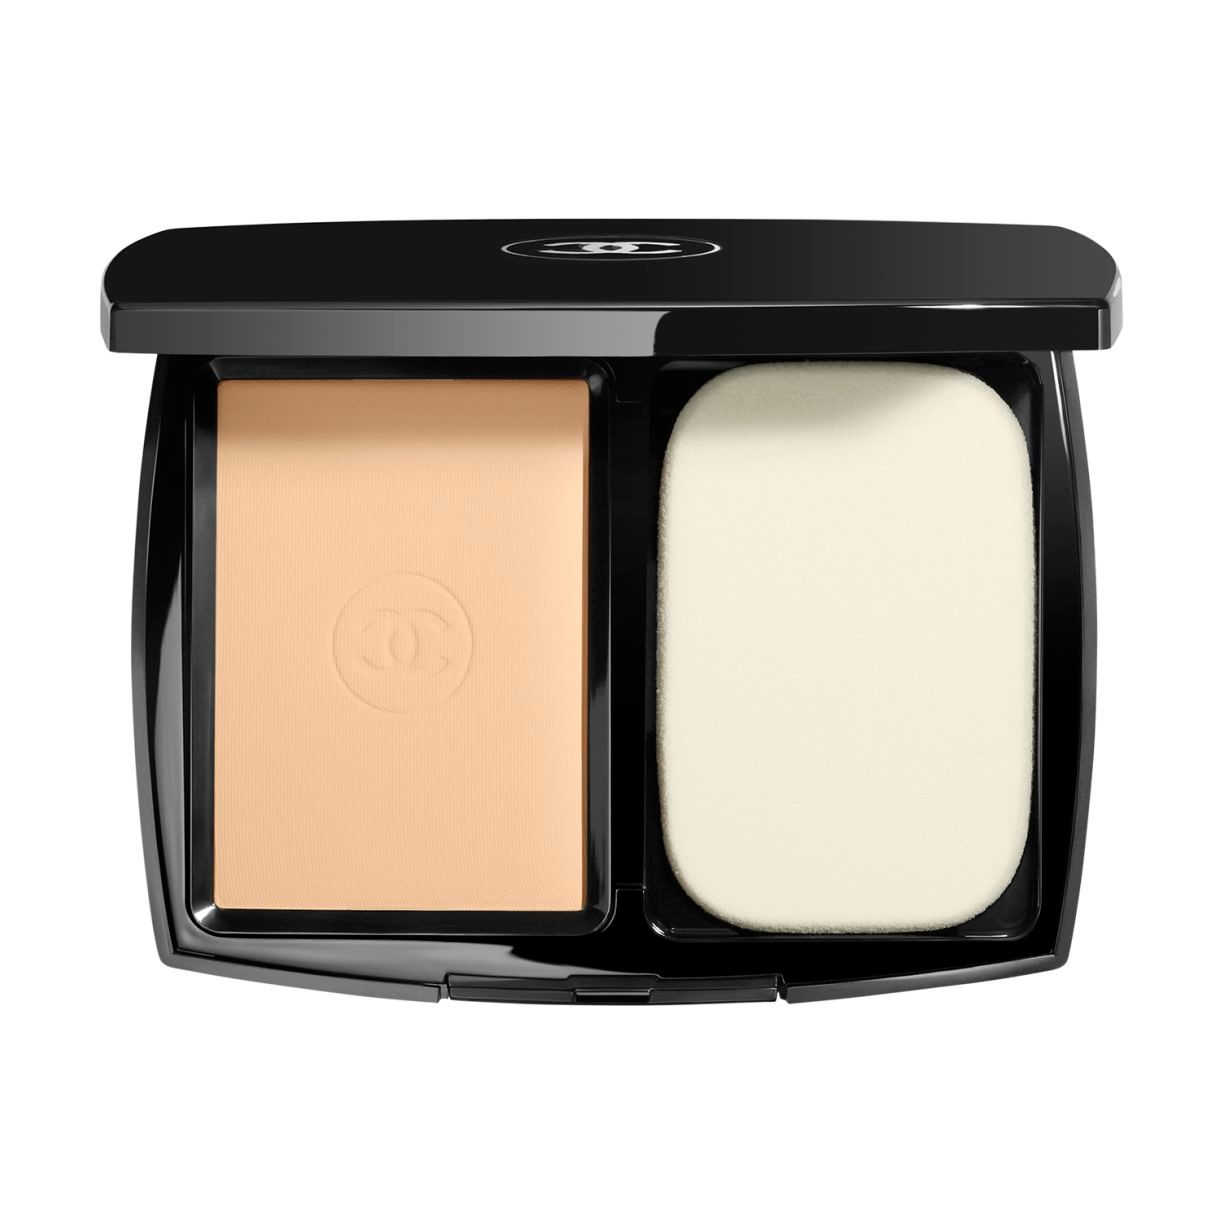 LE TEINT ULTRA TENUE ULTRAWEAR FLAWLESS COMPACT FOUNDATION 10 BEIGE 13G